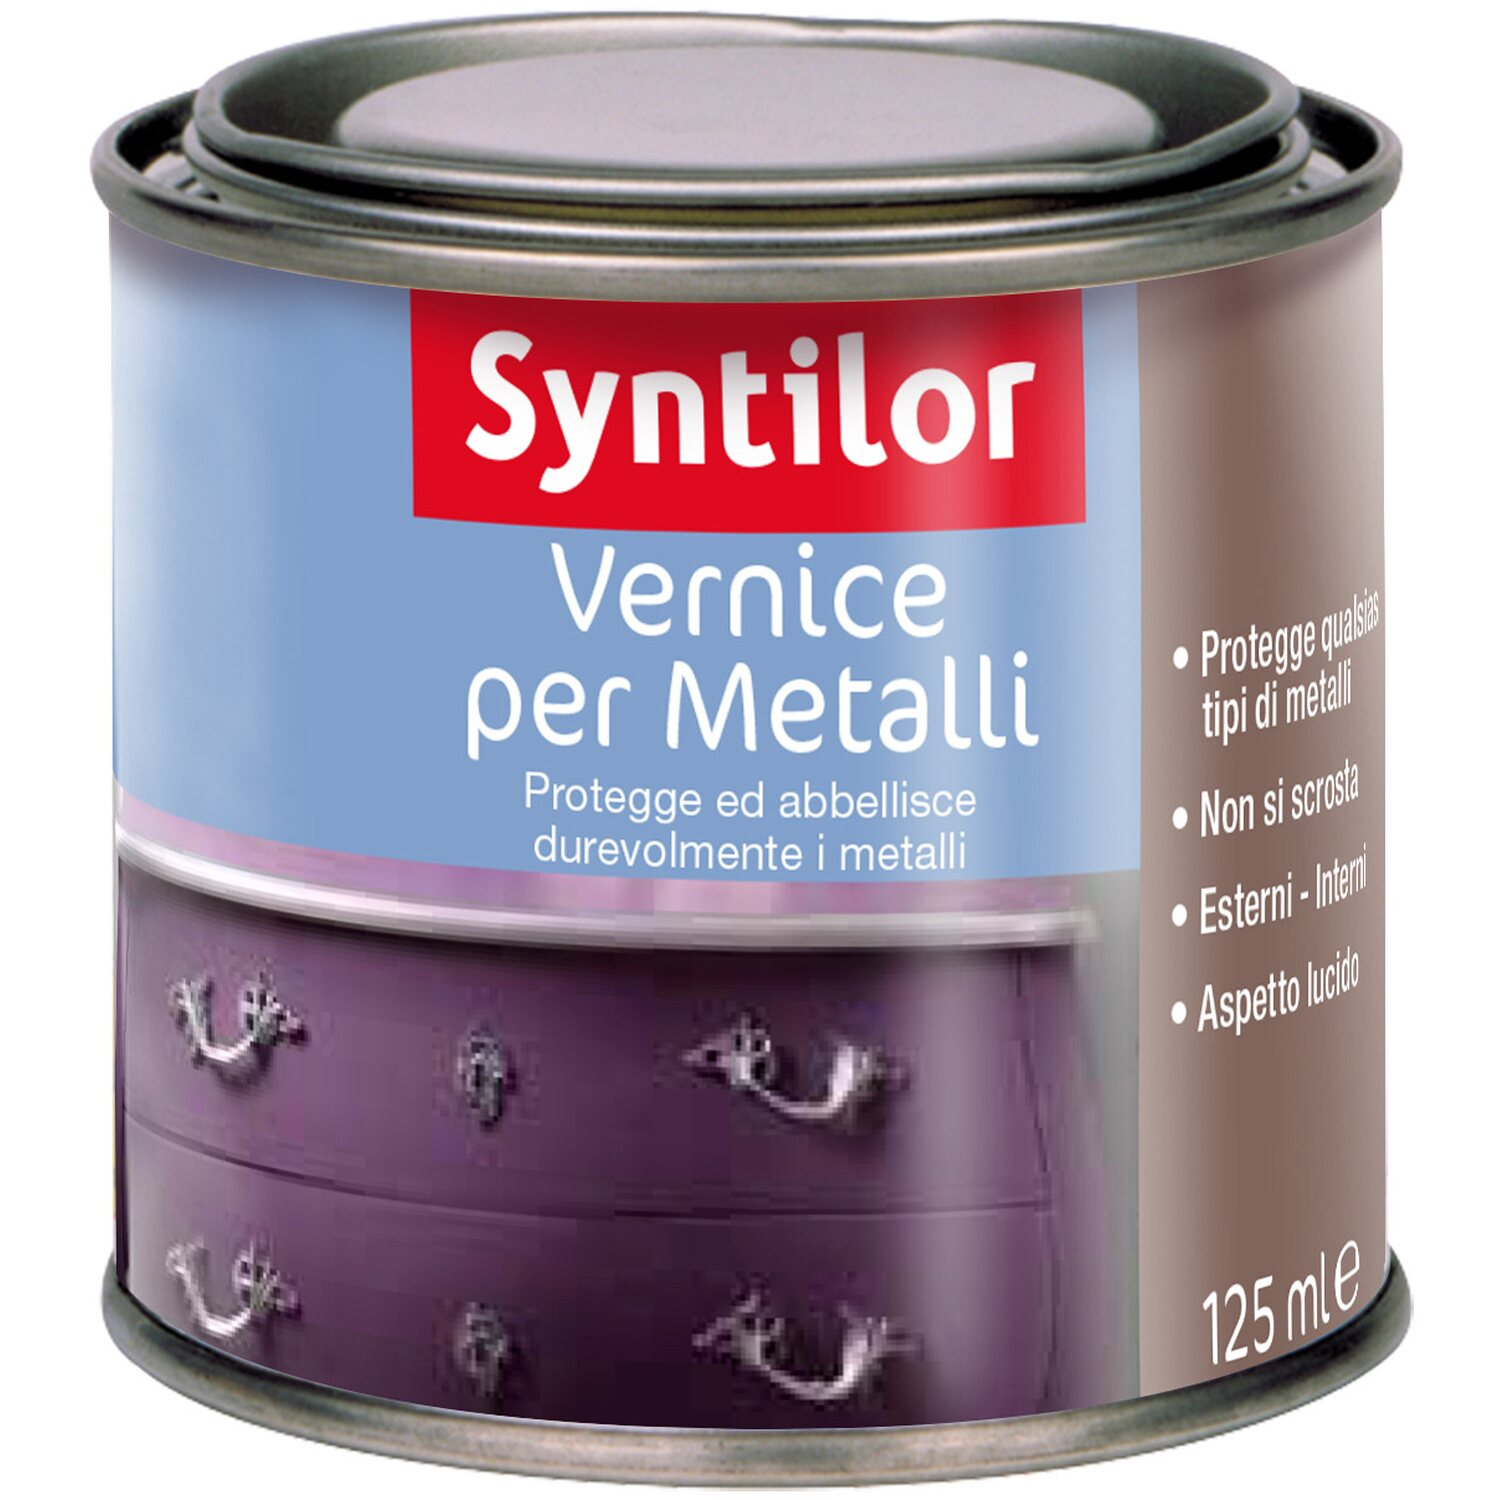 Vernice per metalli effetto incolore 125 ml acquista da obi for Vernice per ferro